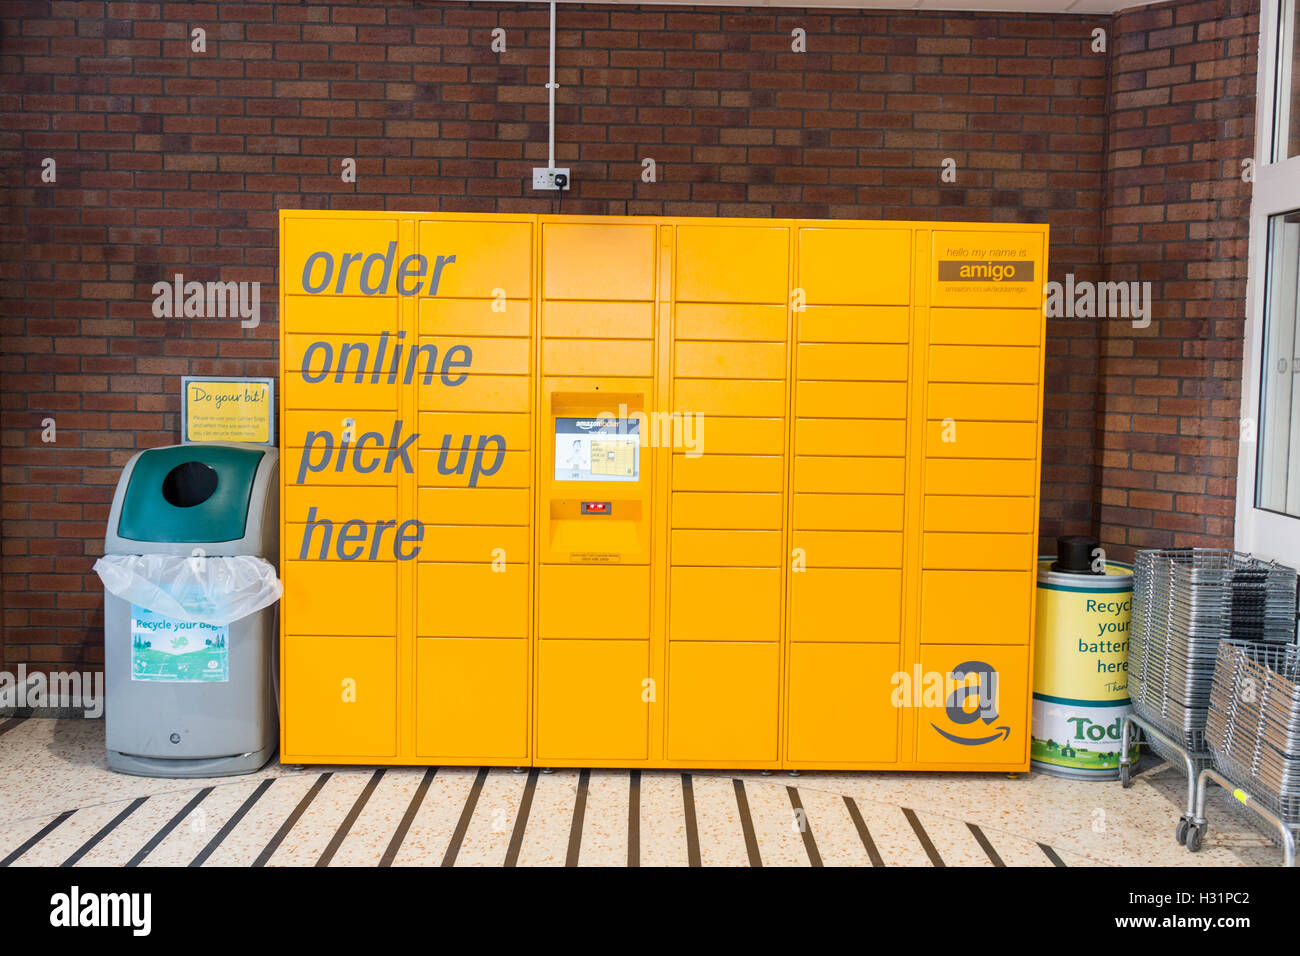 Amazon order online pick up lockers in a Morrisons store - Stock Image